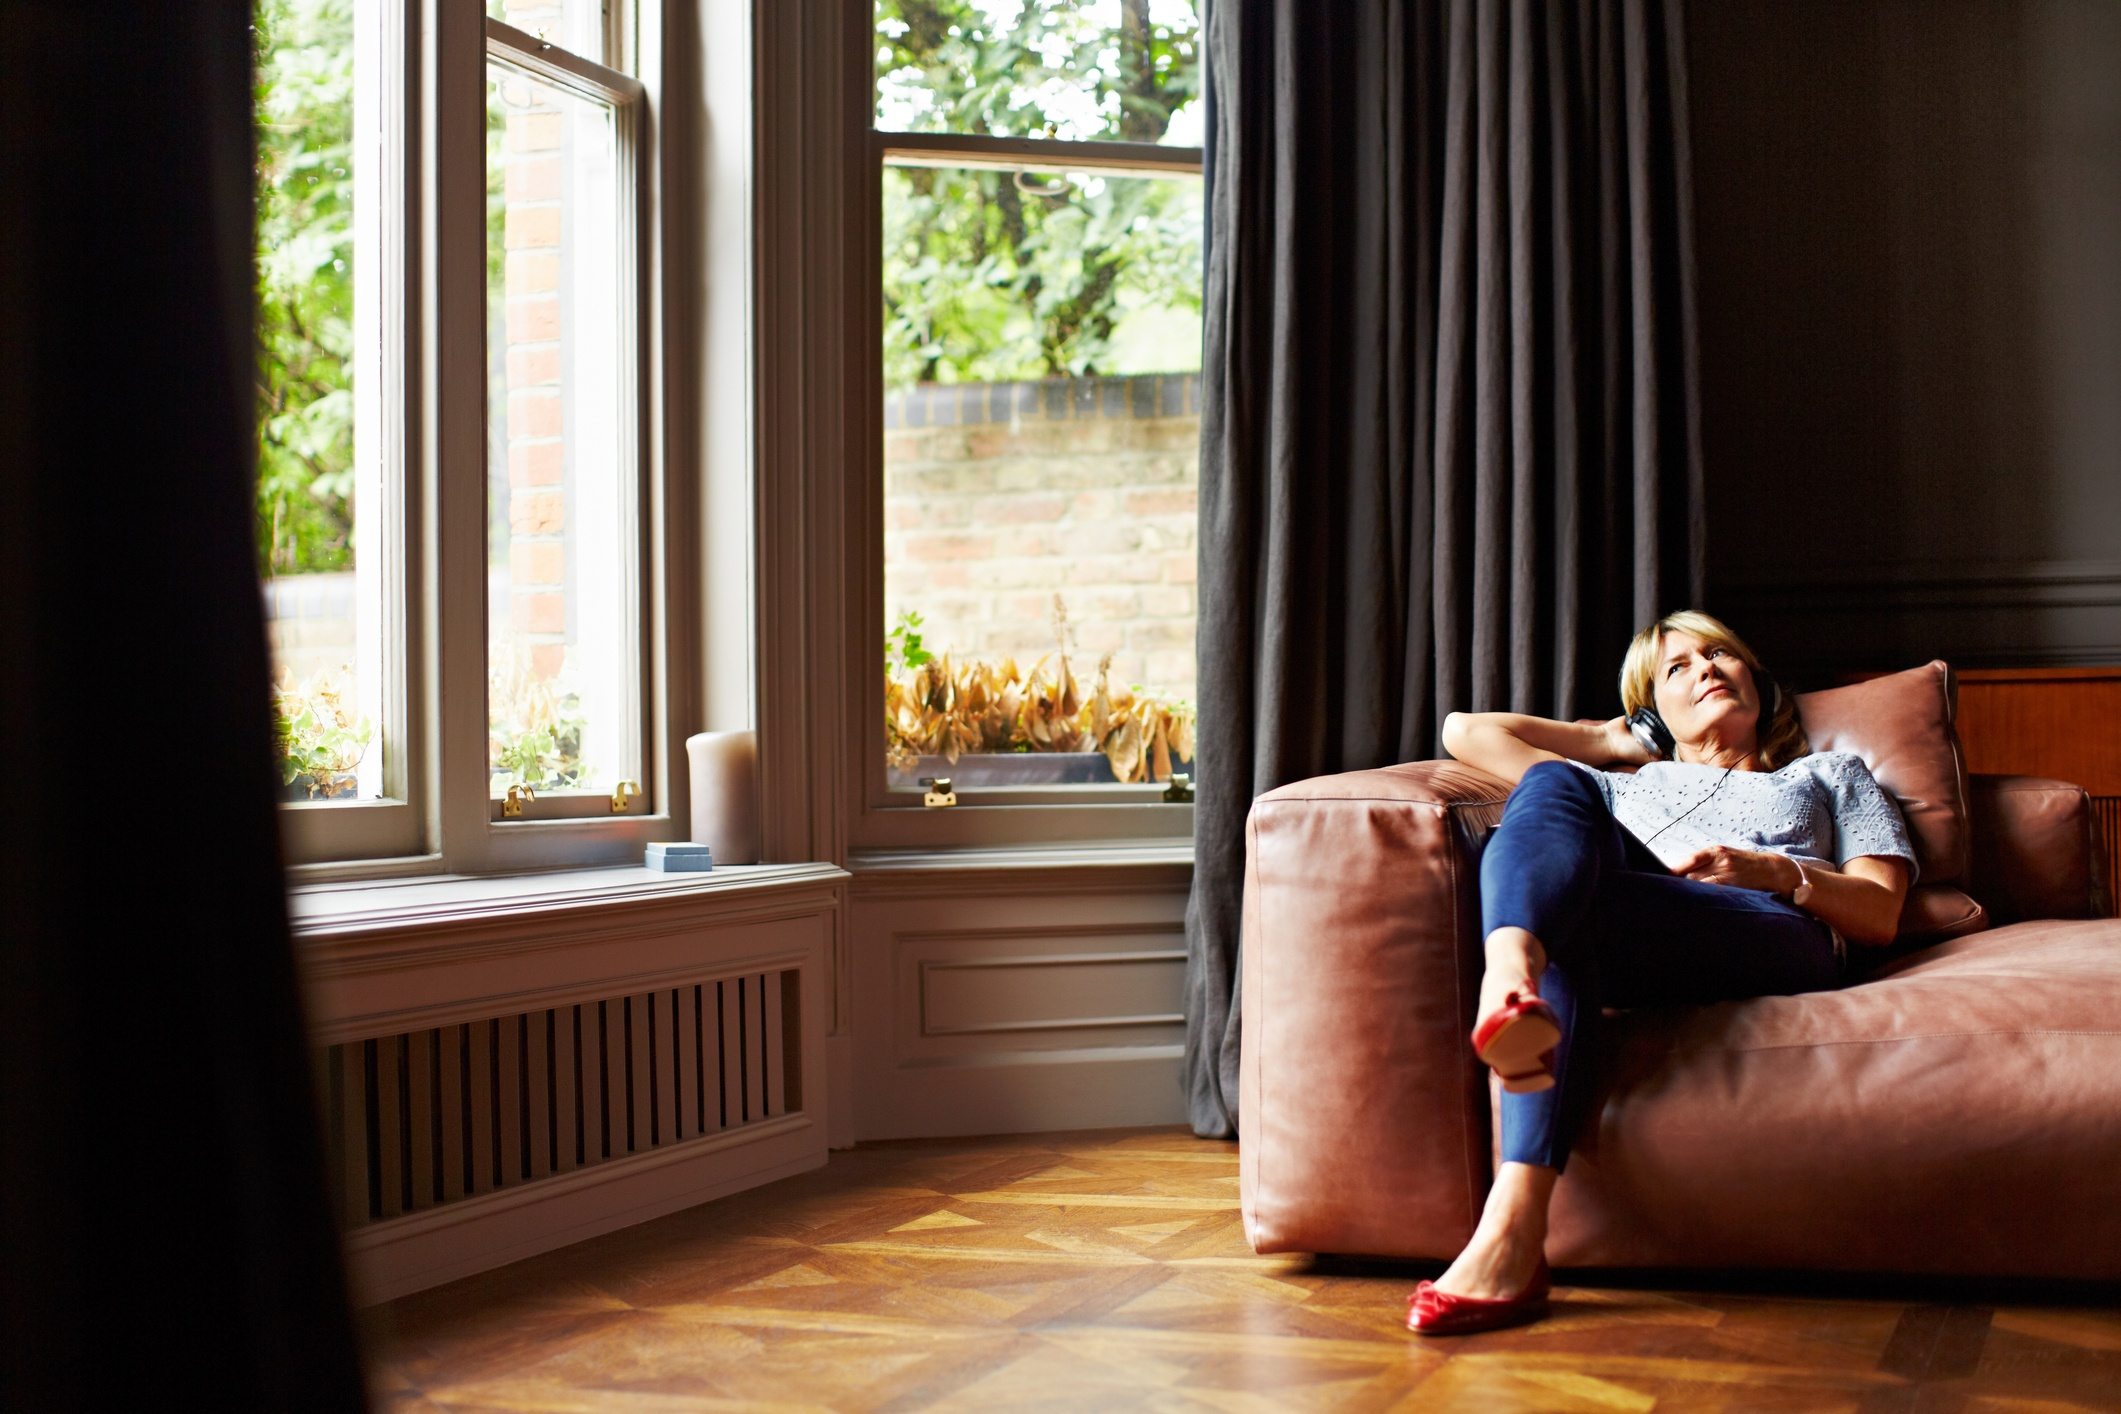 Woman enjoying relaxation and reveling in self acceptance